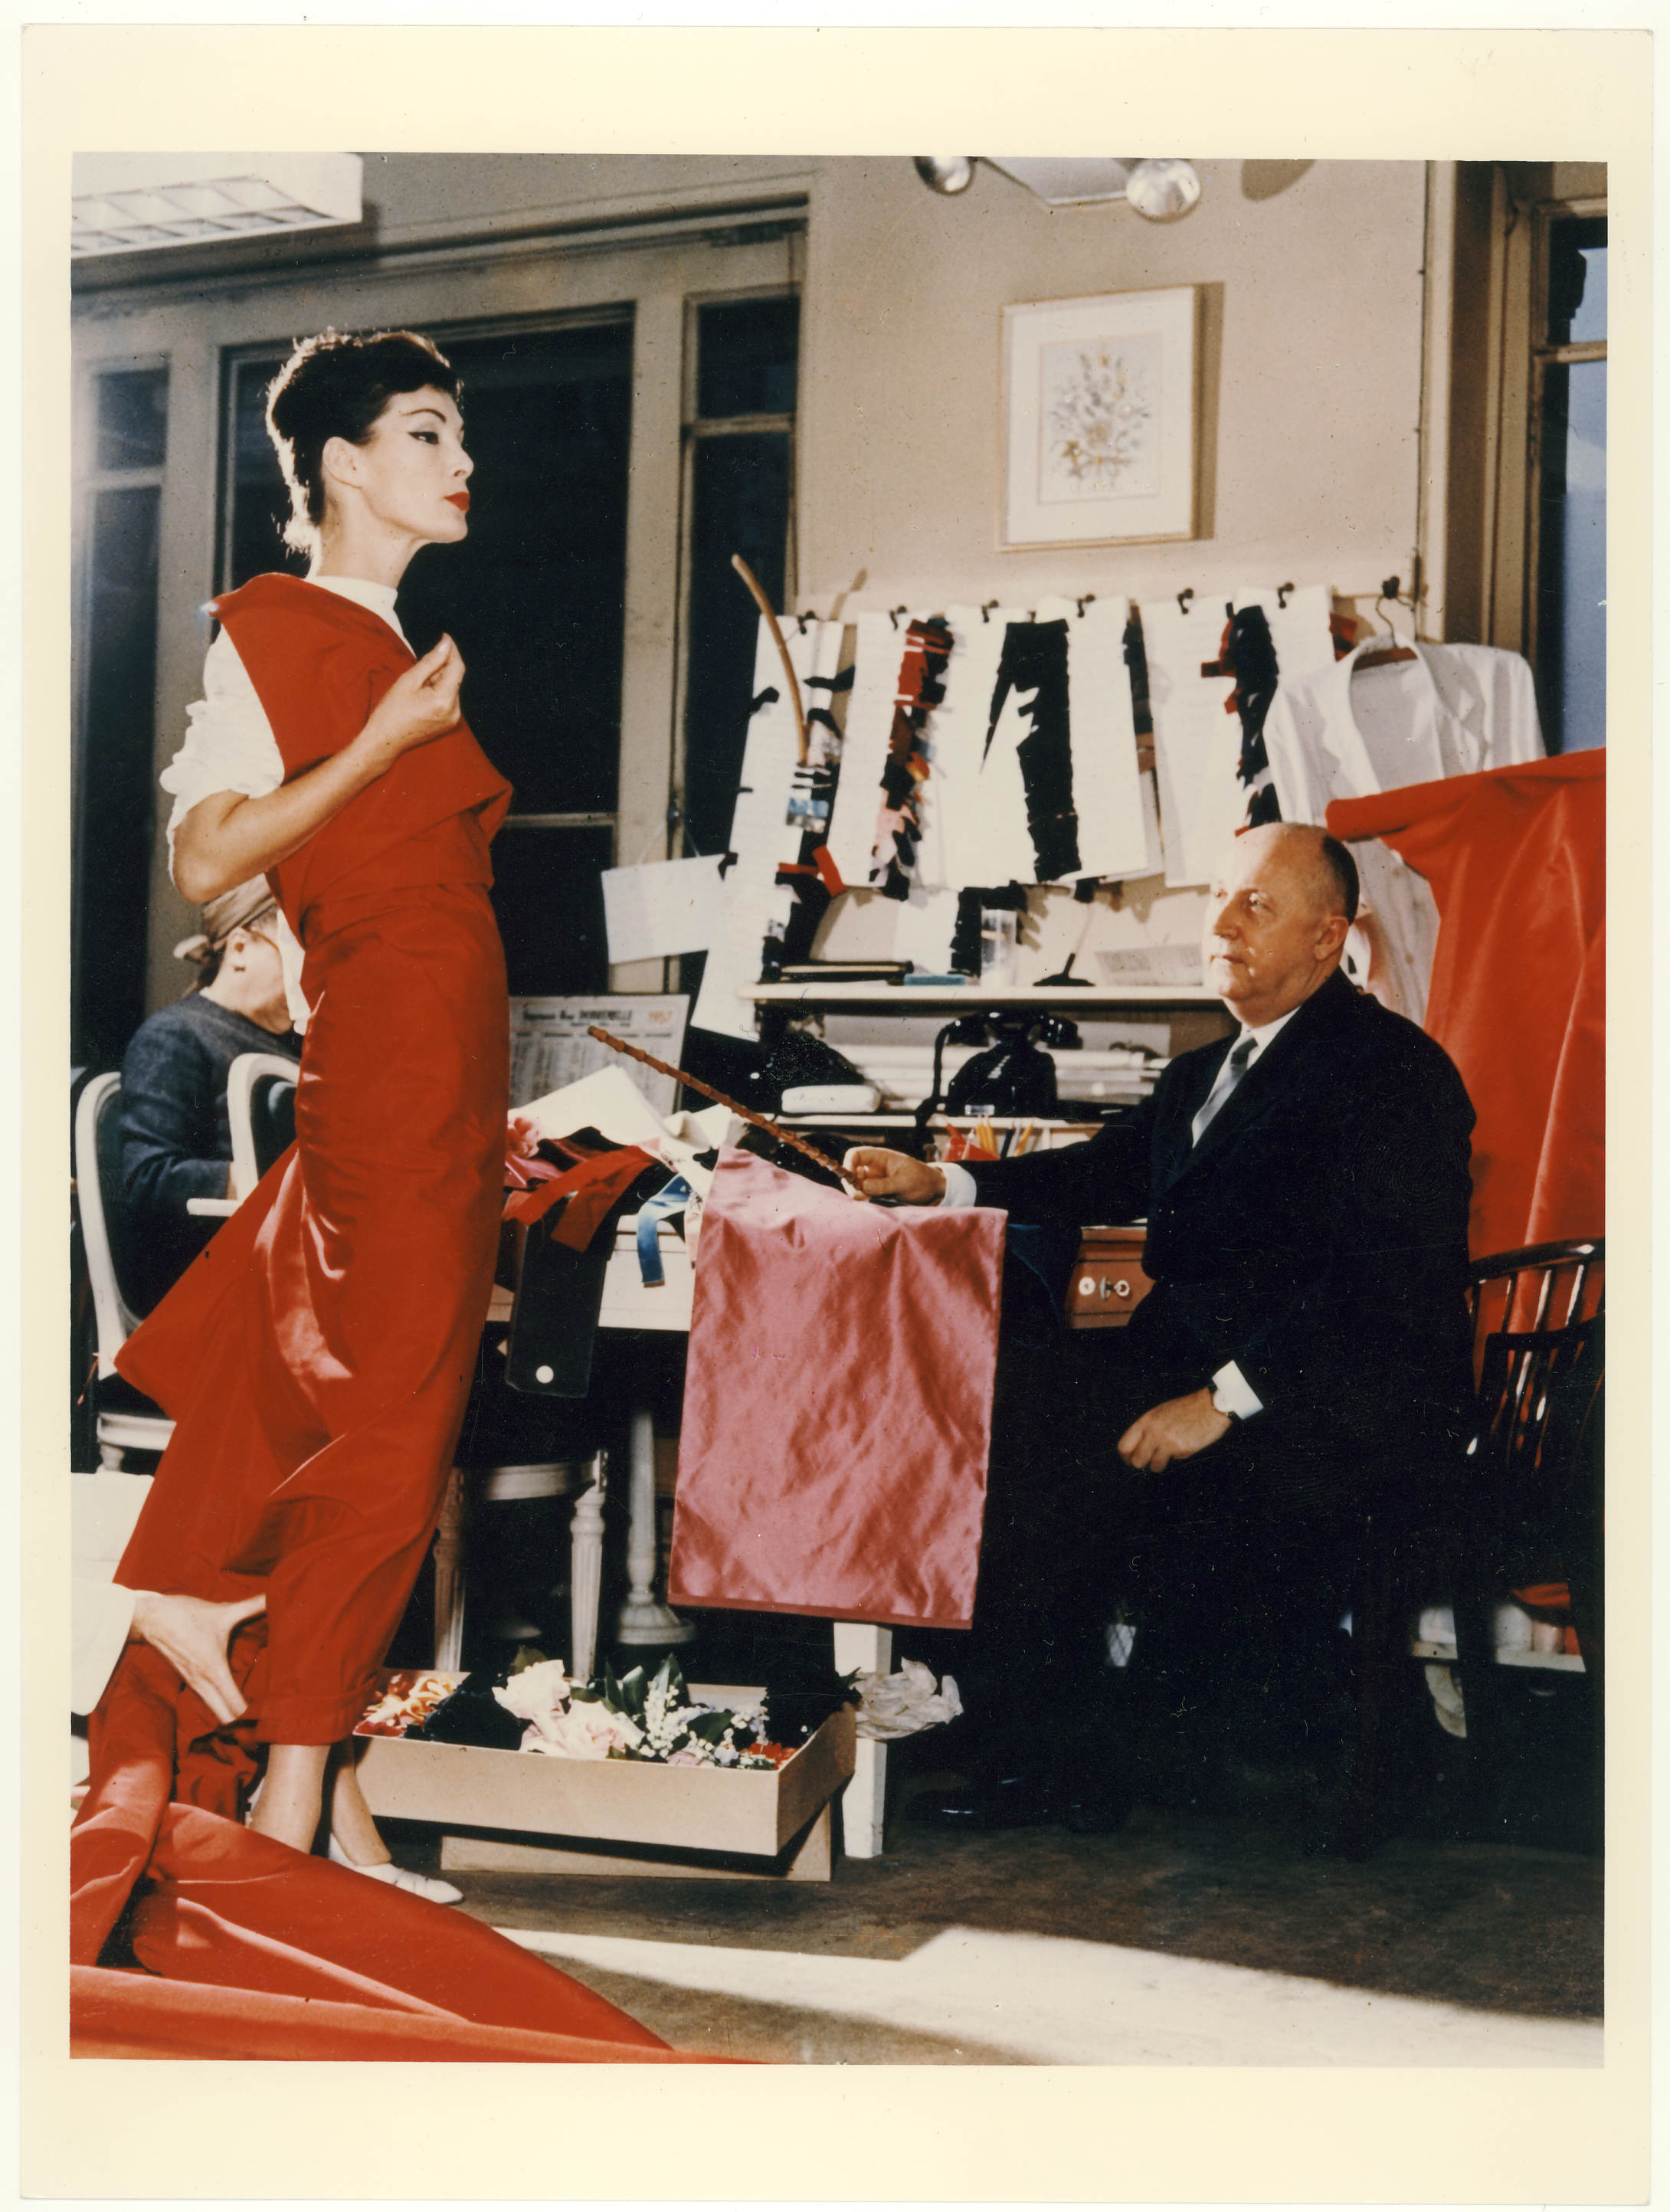 christian-dior-with-model-lucky-circa-1955.-courtesy-of-christian-dior-copy